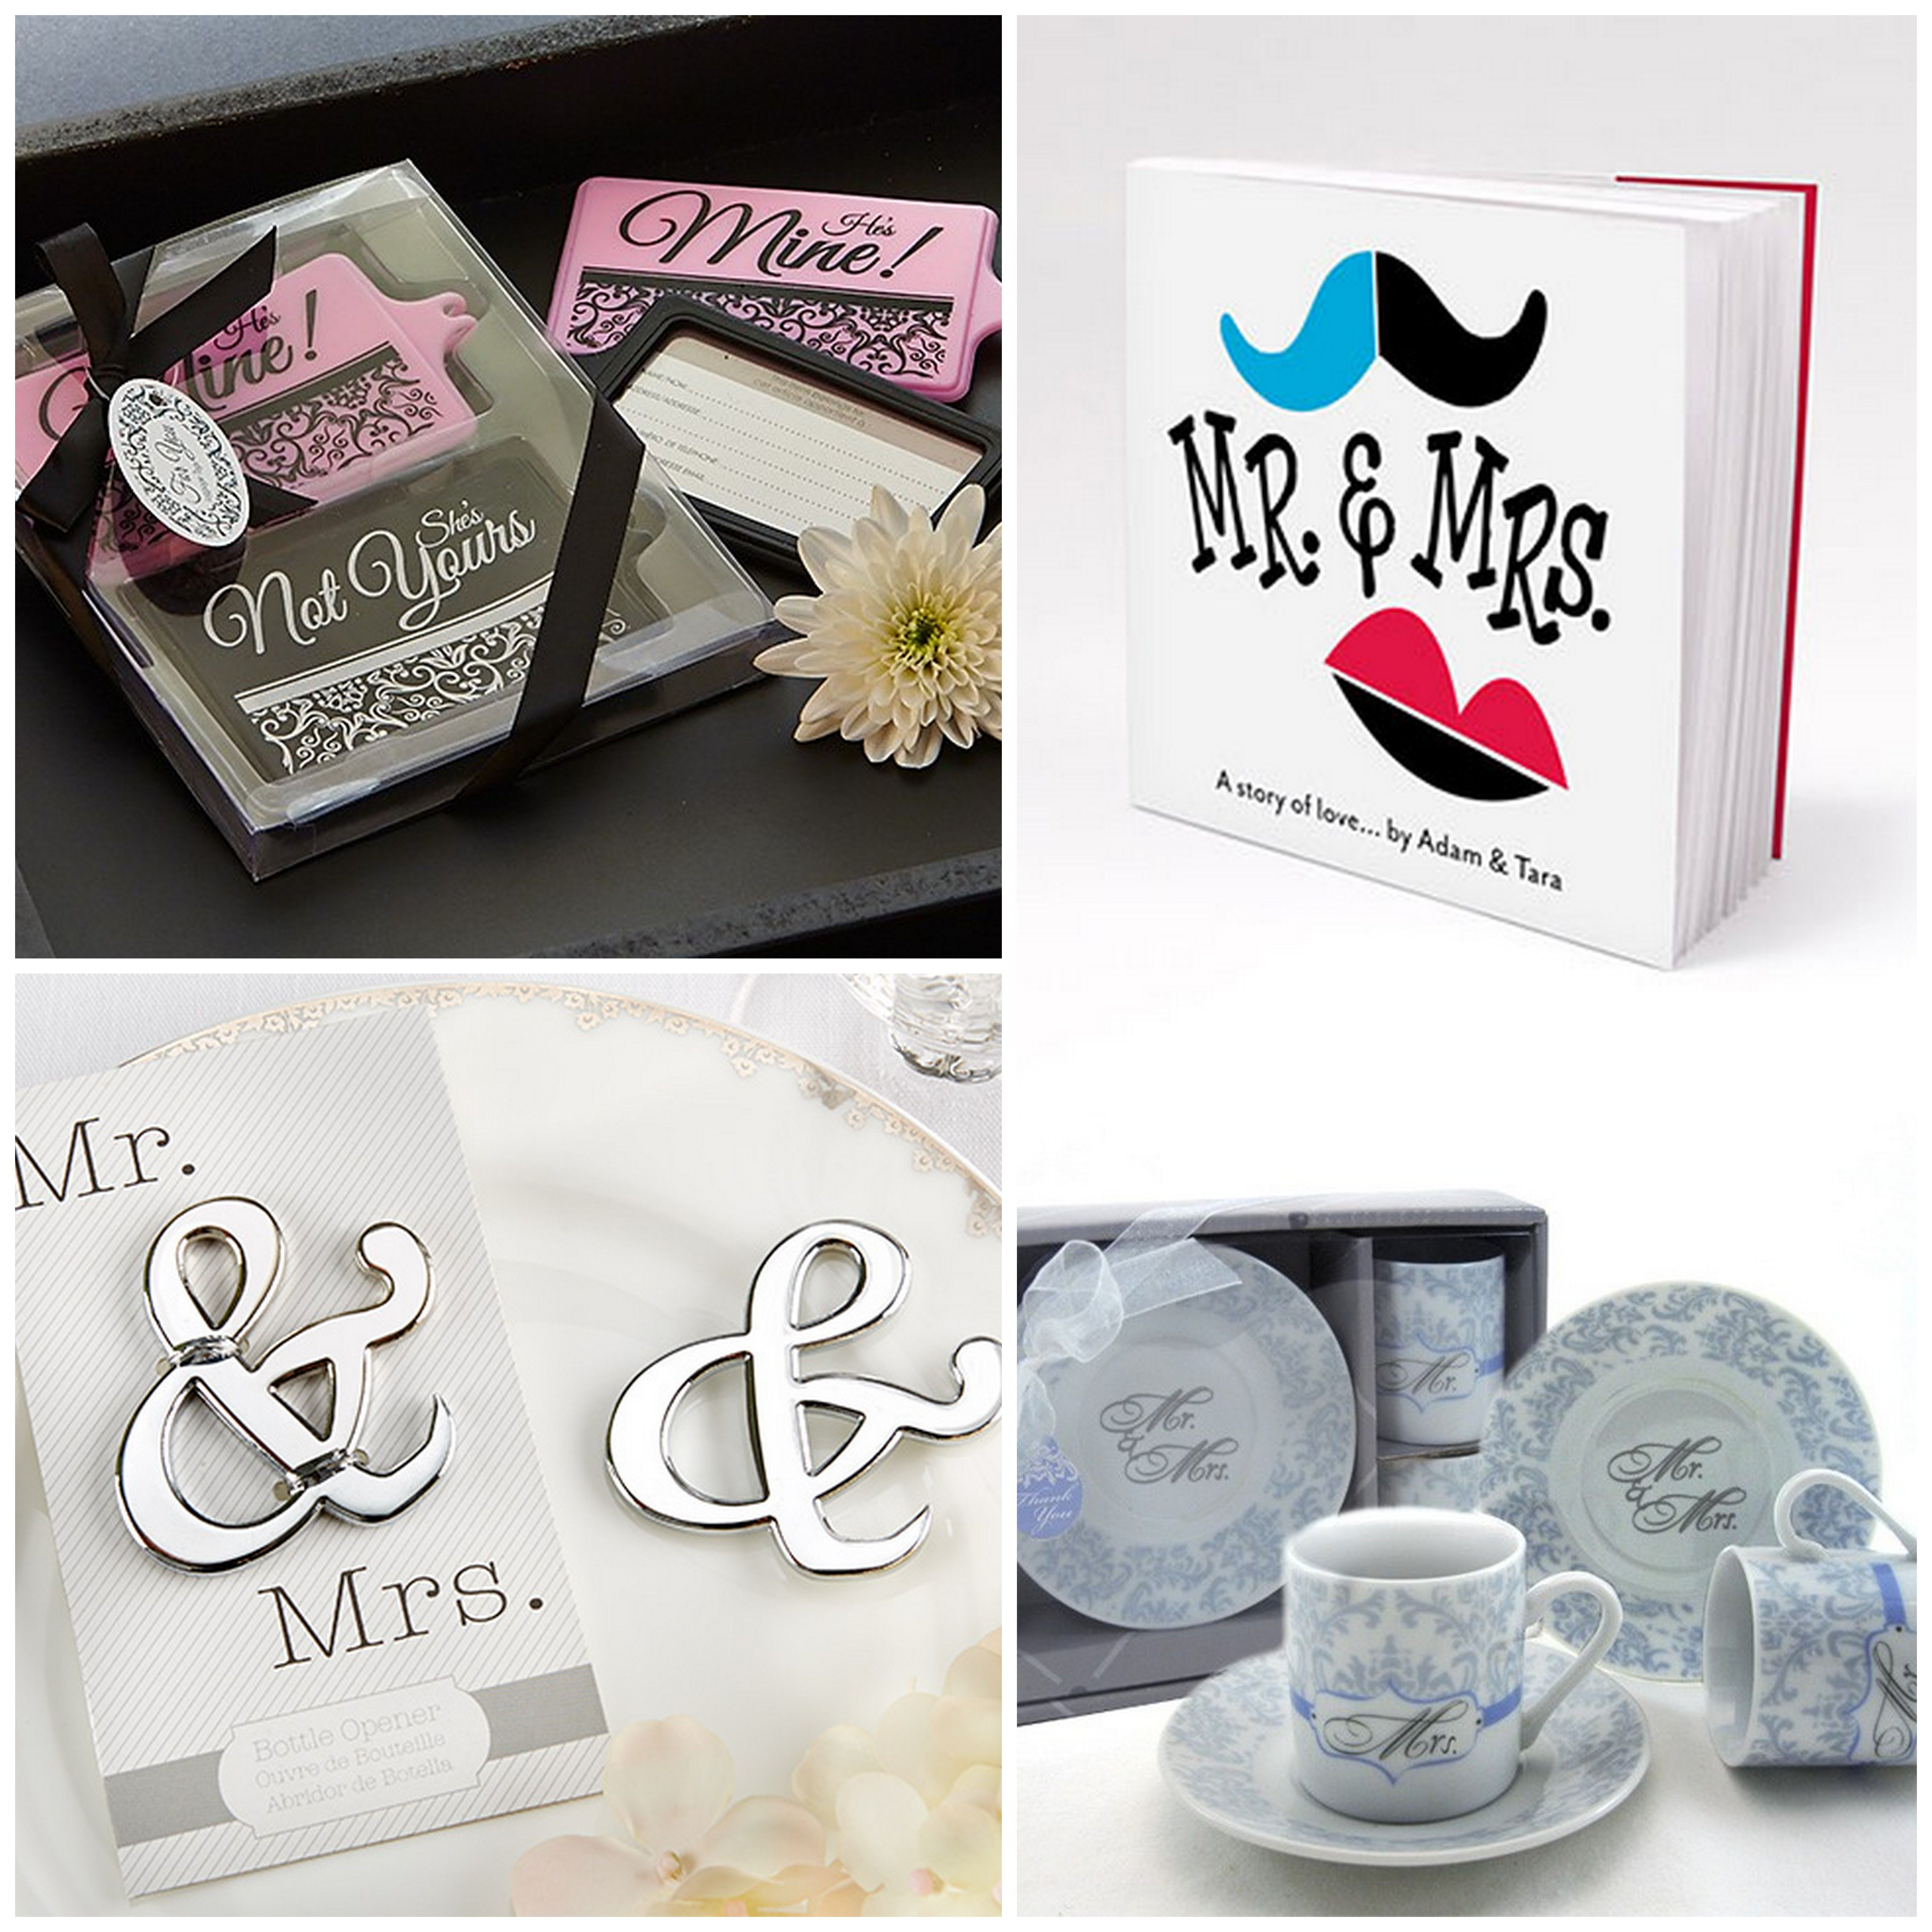 Mr. and Mrs. Wedding Accessories, Favors and Gifts | HotRef Party Gifts